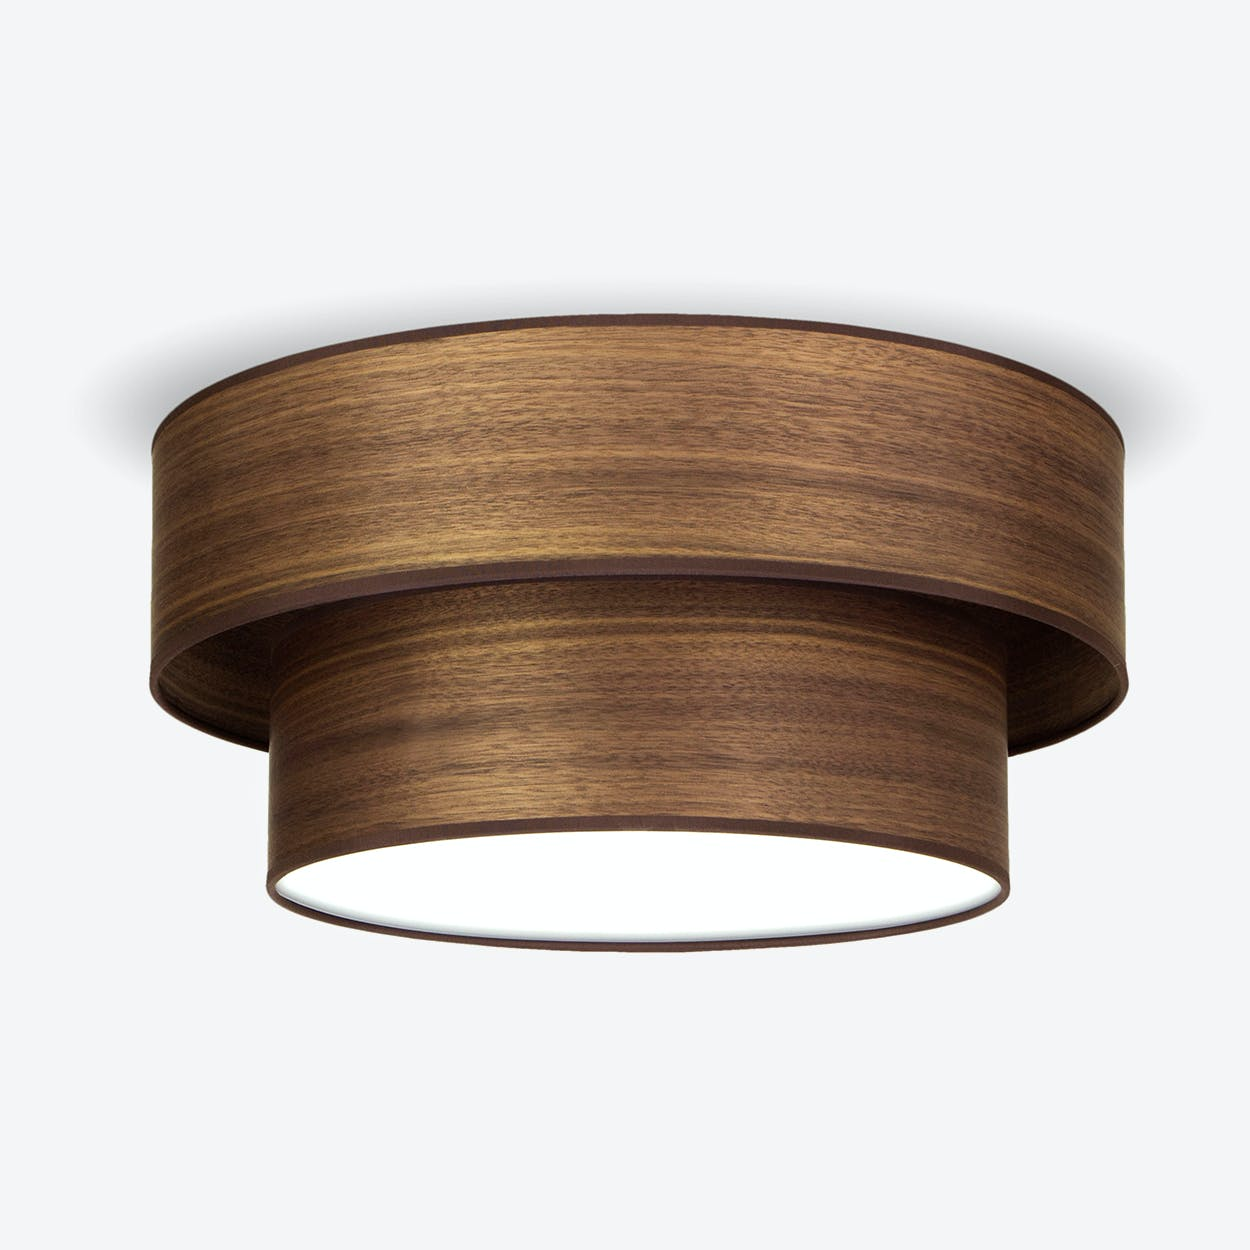 TSURI Large Double Ceiling Lamp in Walnut